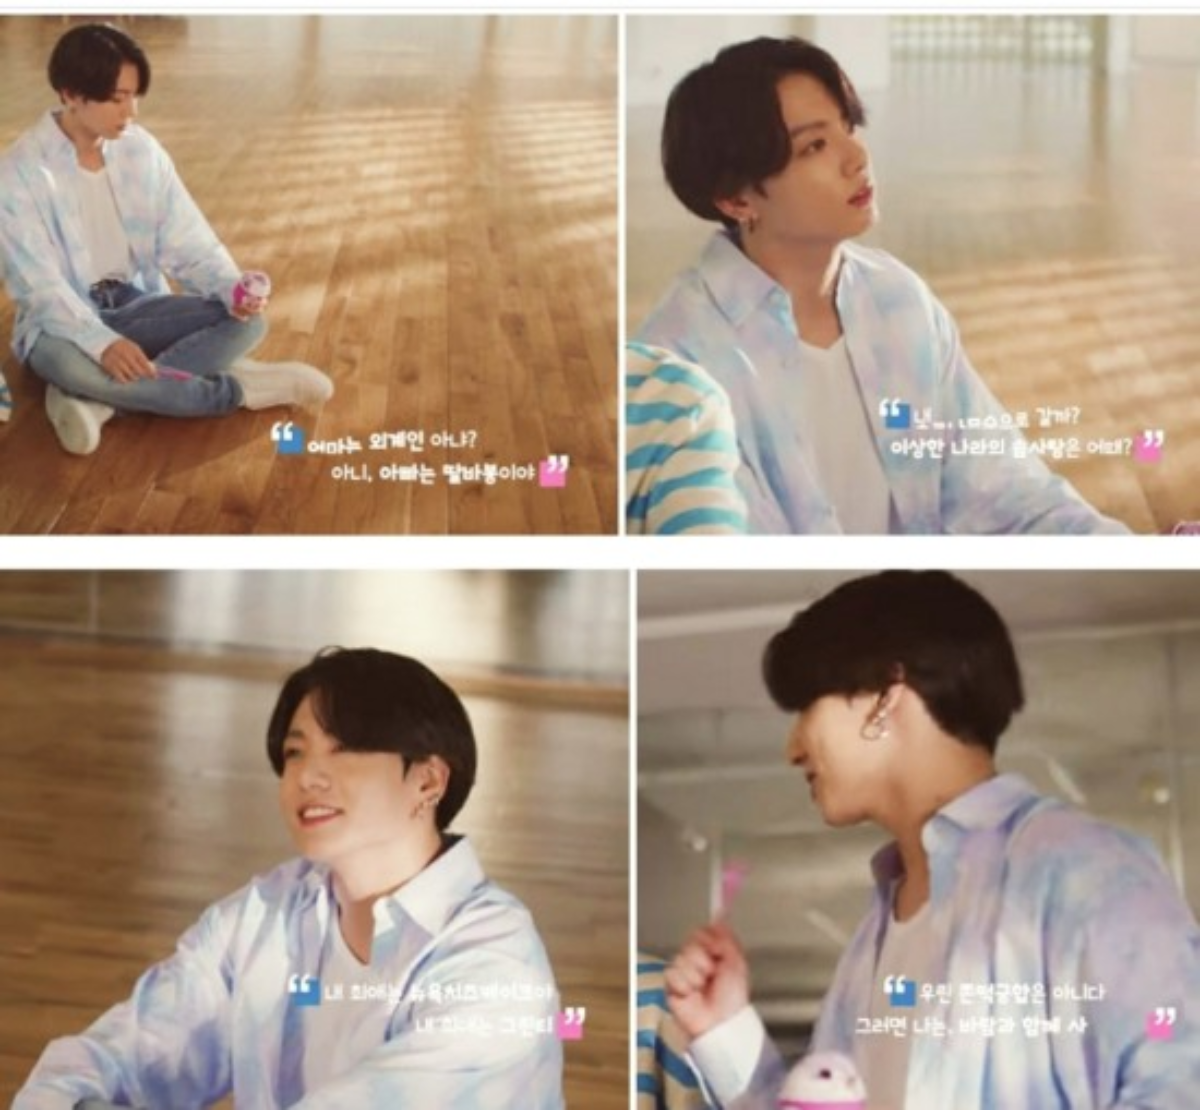 BTS Jungkook, The Handsome Guy in the Ice Cream Commercial